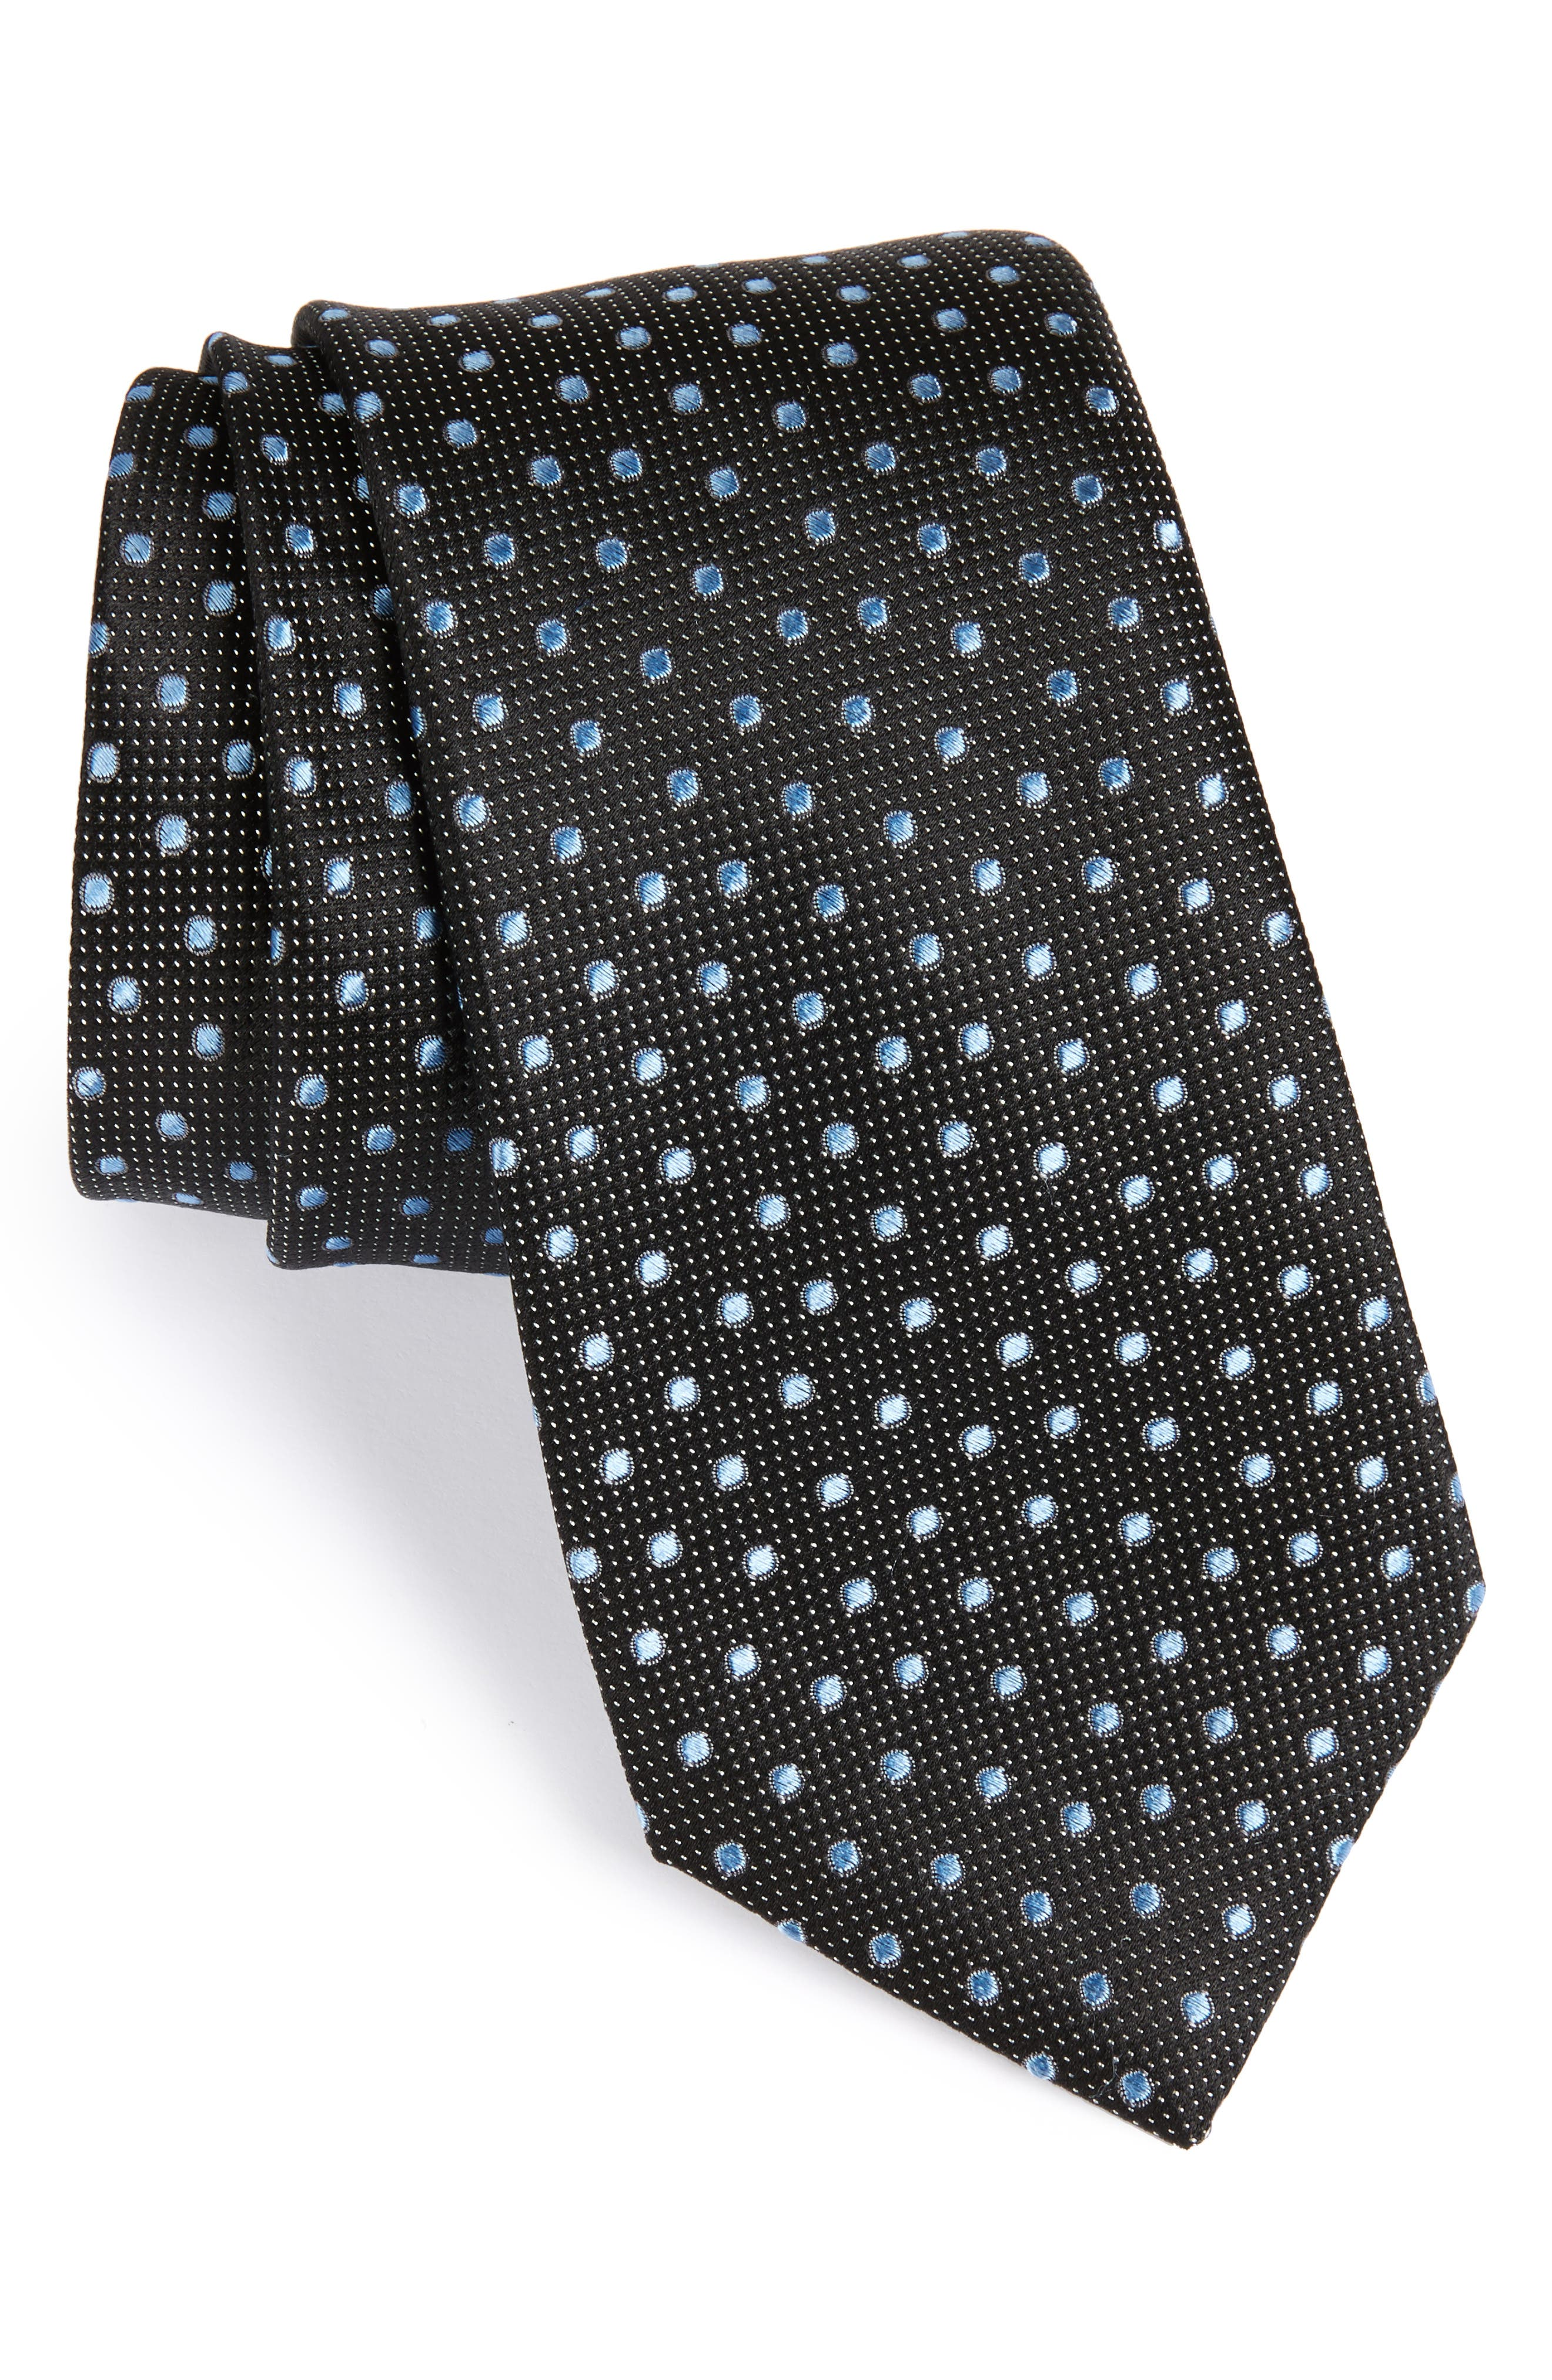 Alternate Image 1 Selected - Nordstrom Men's Shop Double Dot Silk Tie